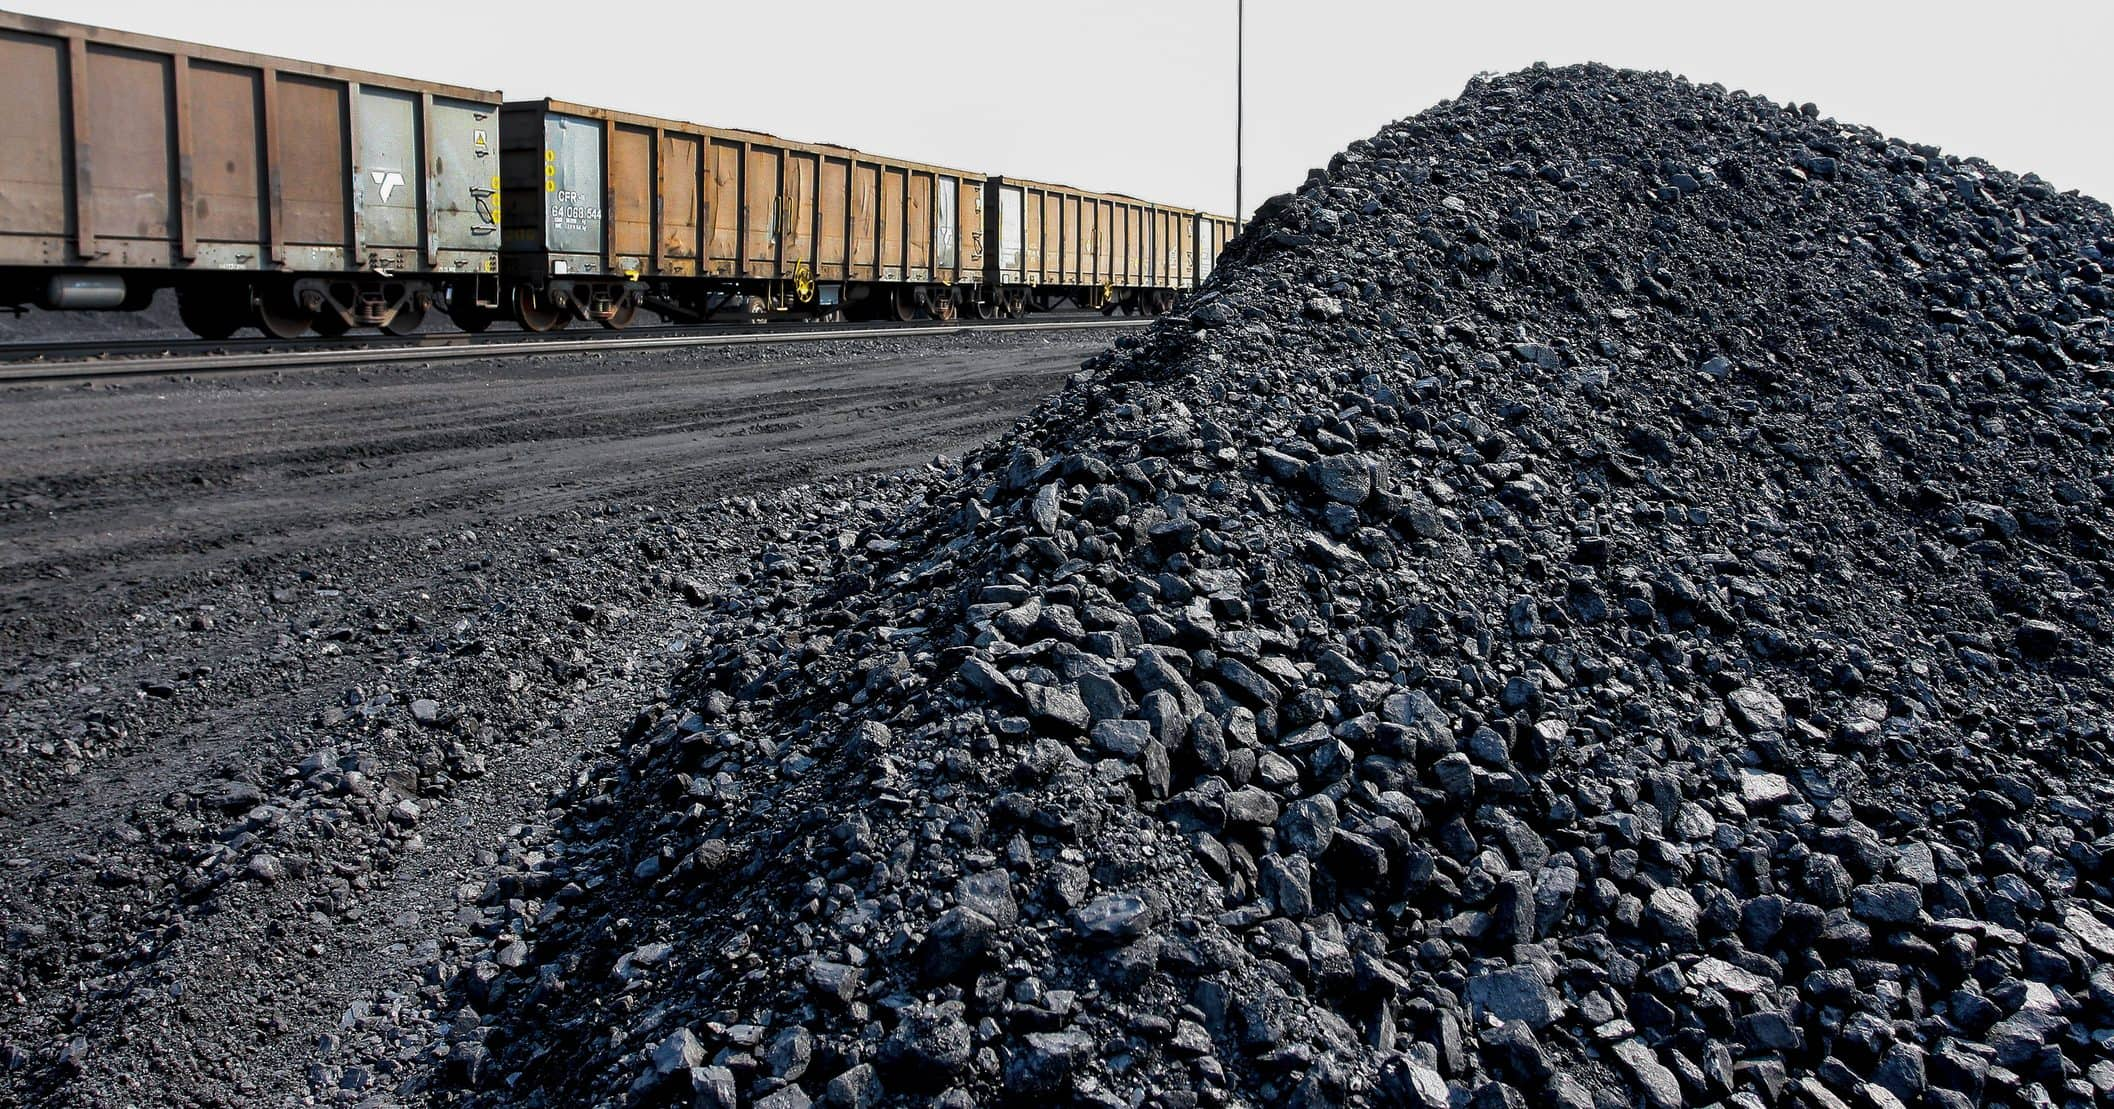 Coal stocks in warehouses are 2.1 million tons higher than last year – the Ministry of Energy